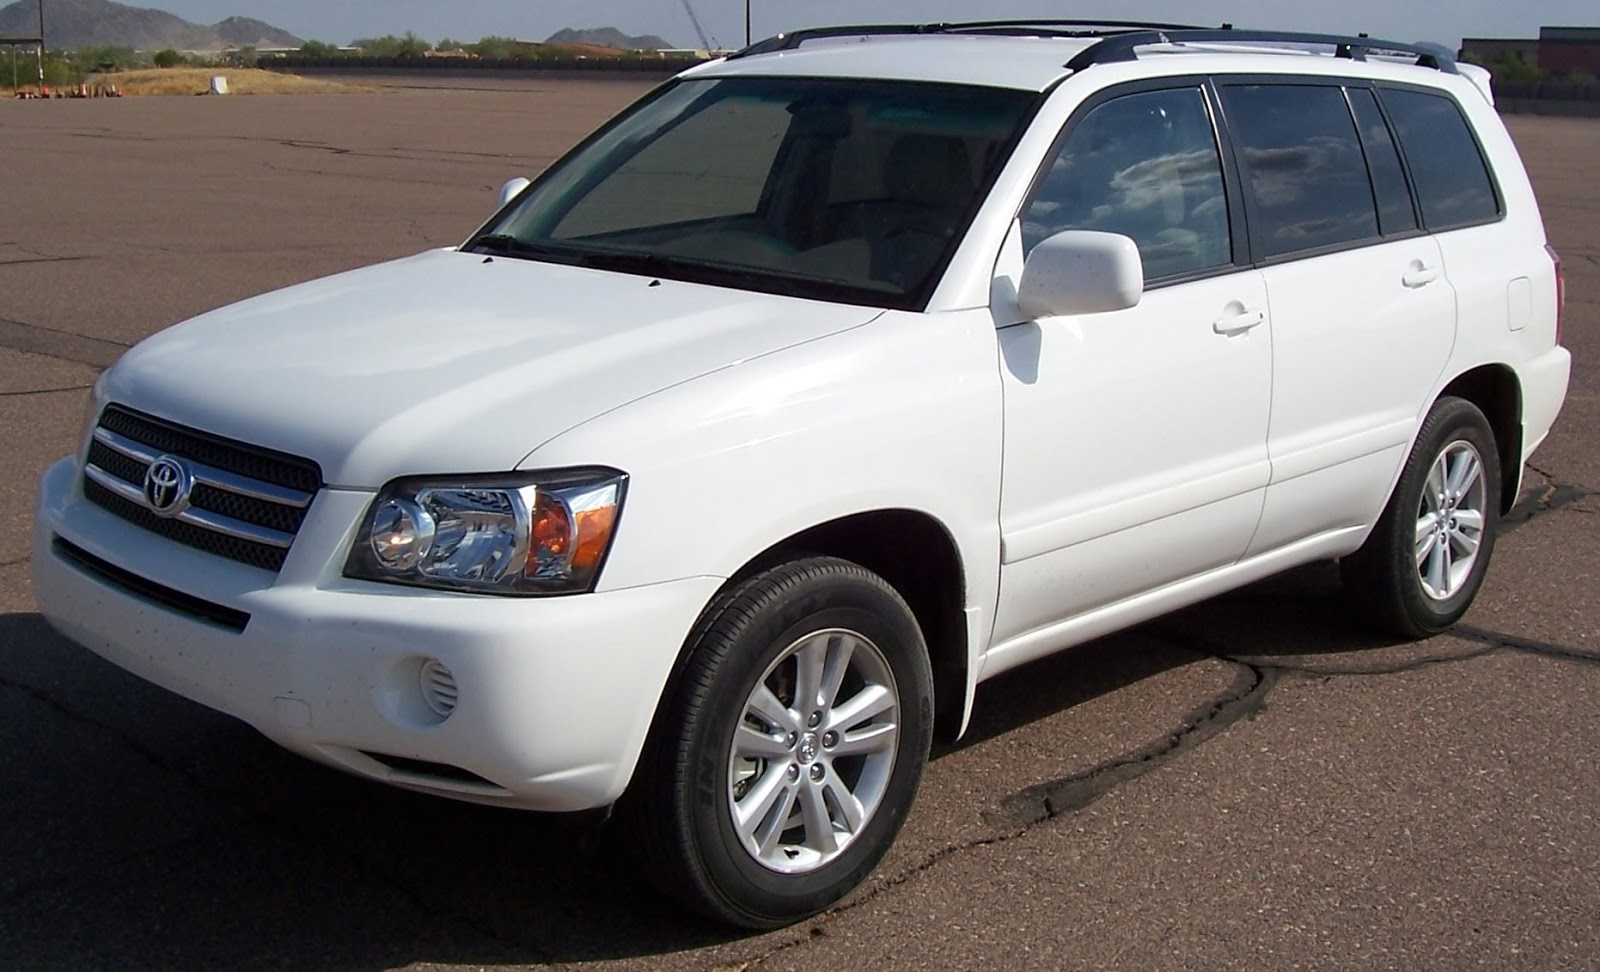 2002 Toyota Highlander owners manual